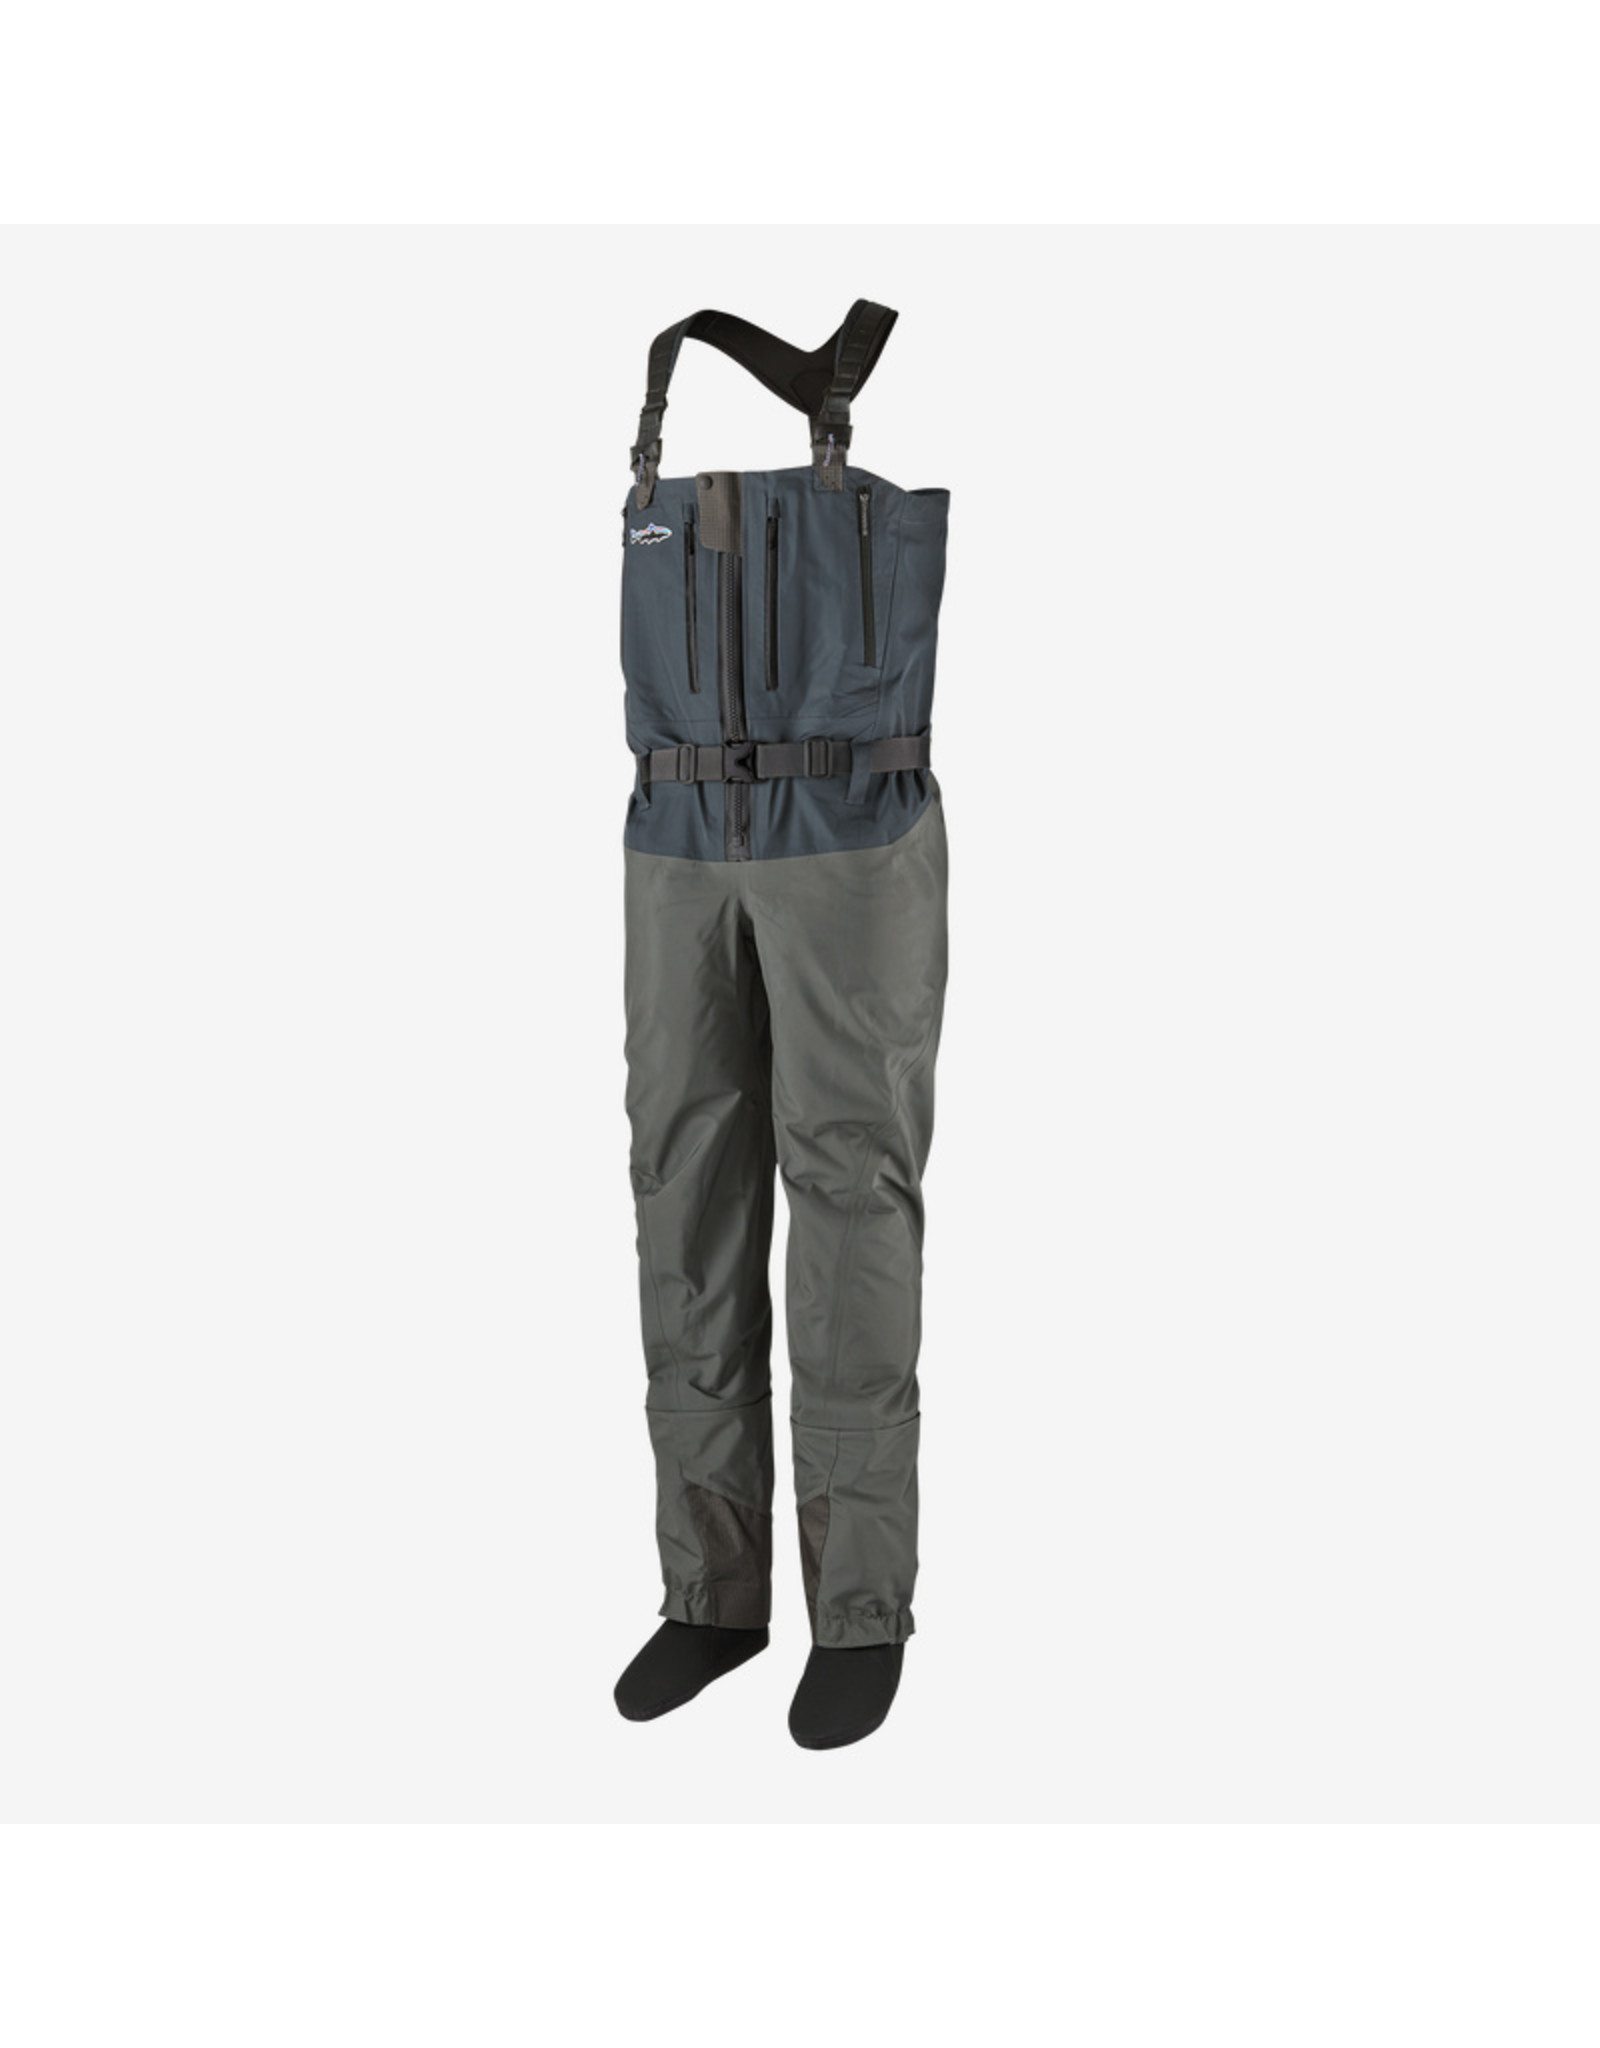 Patagonia Patagonia - Men's Swiftcurrent Expedition Zip-Front Waders